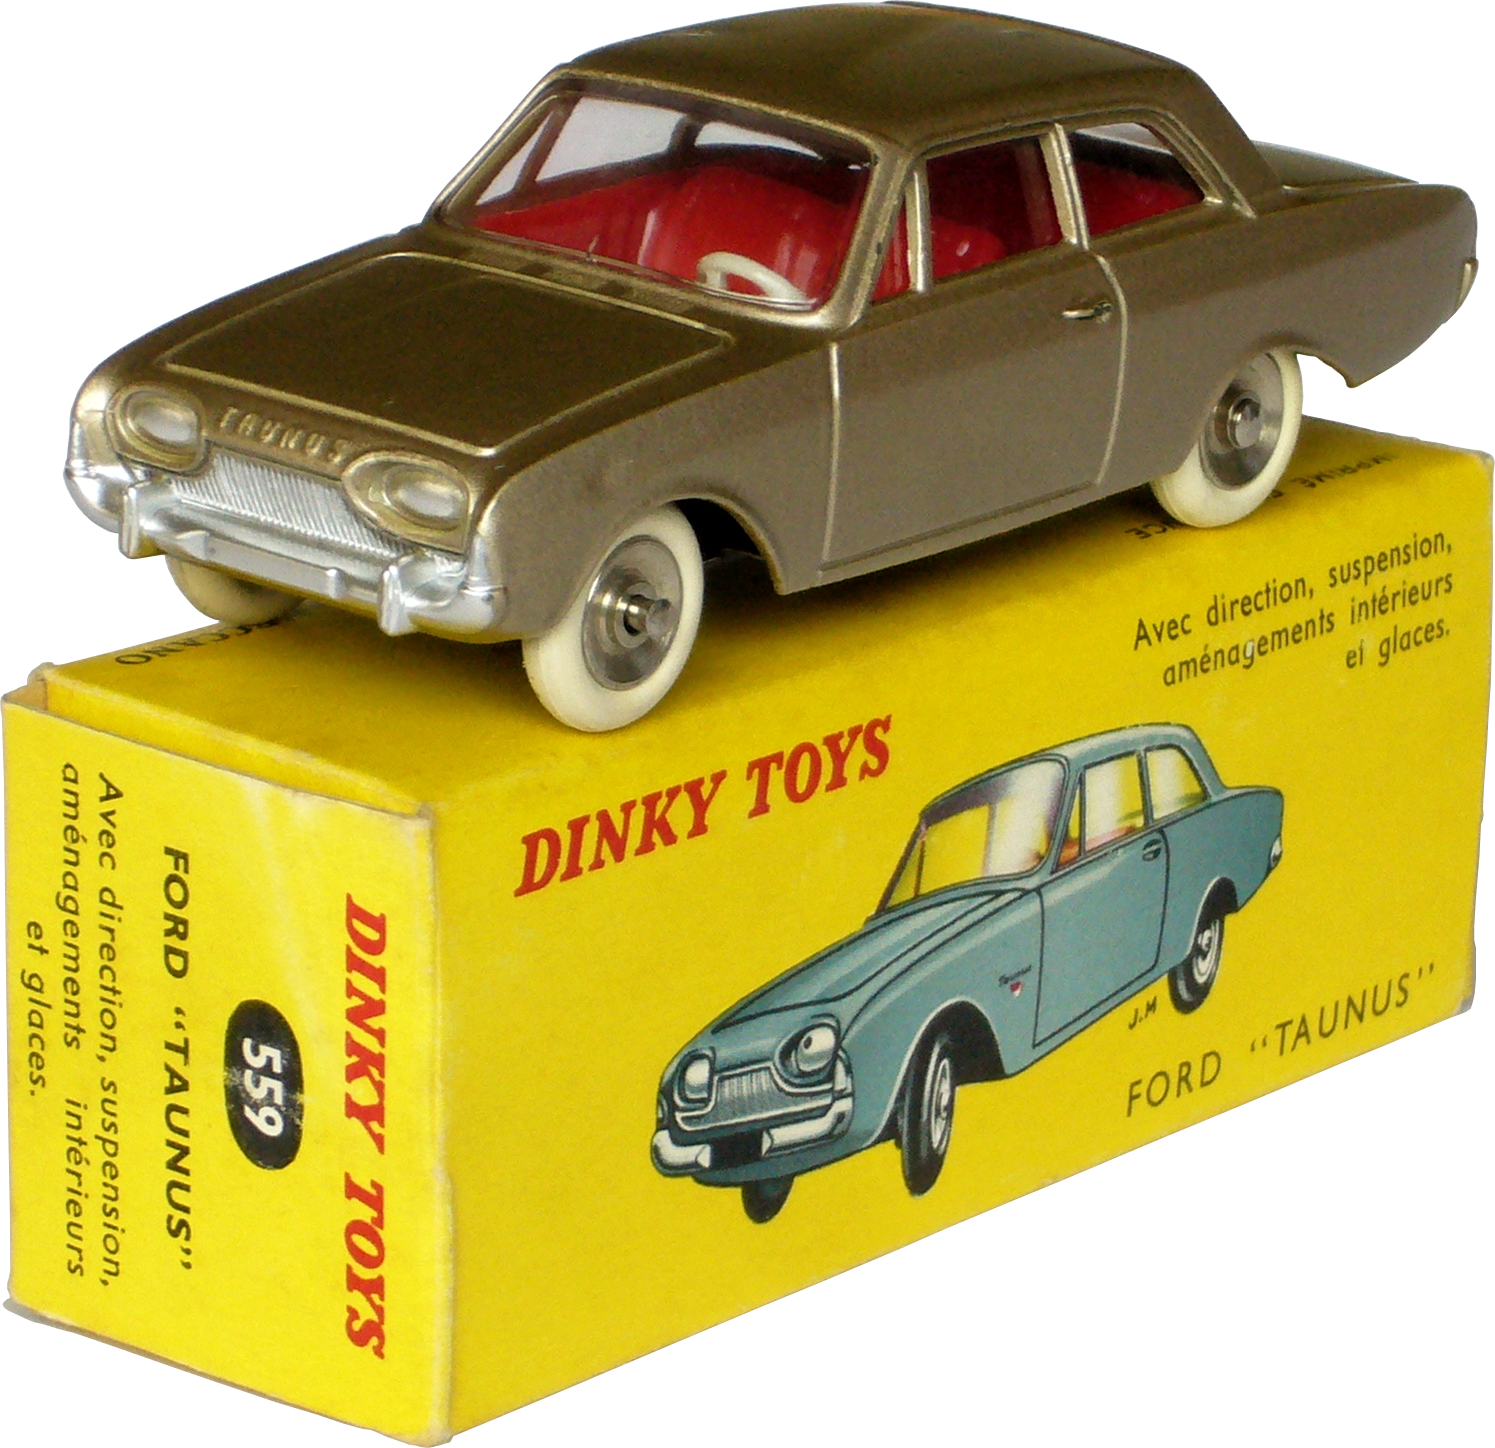 Ford Taunus Dinky-Toys